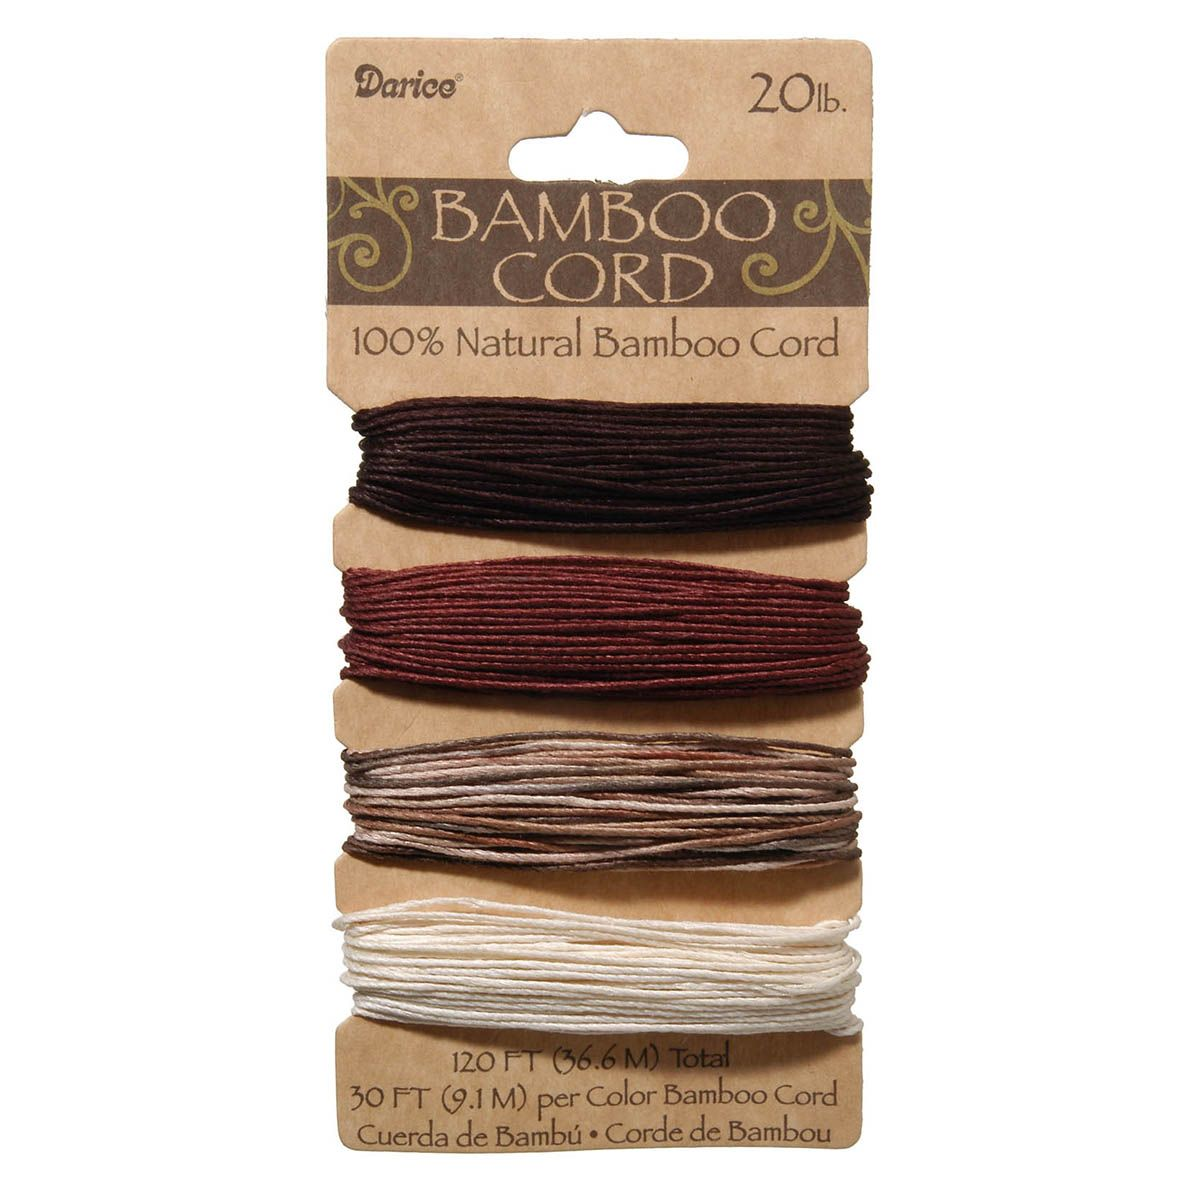 Natural Bamboo Cord Earthy Colors 120ft 20lb Joann Earthy Colors Bamboo Biodegradable Products